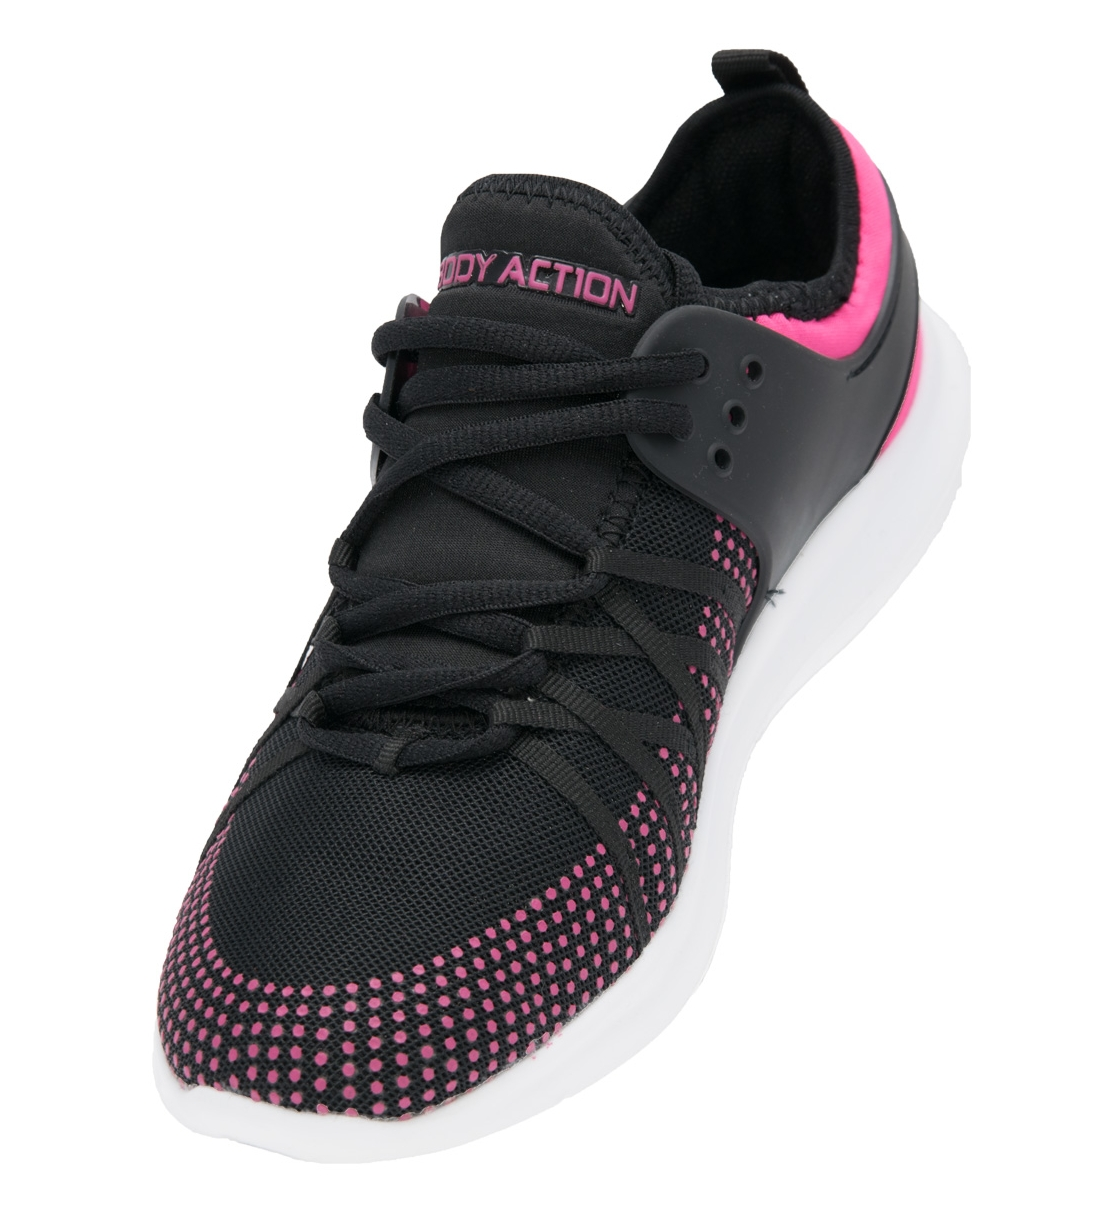 479cb60c4e Body Action Γυναικείο Παπούτσι Training Women Sport Shoes 091812 ...